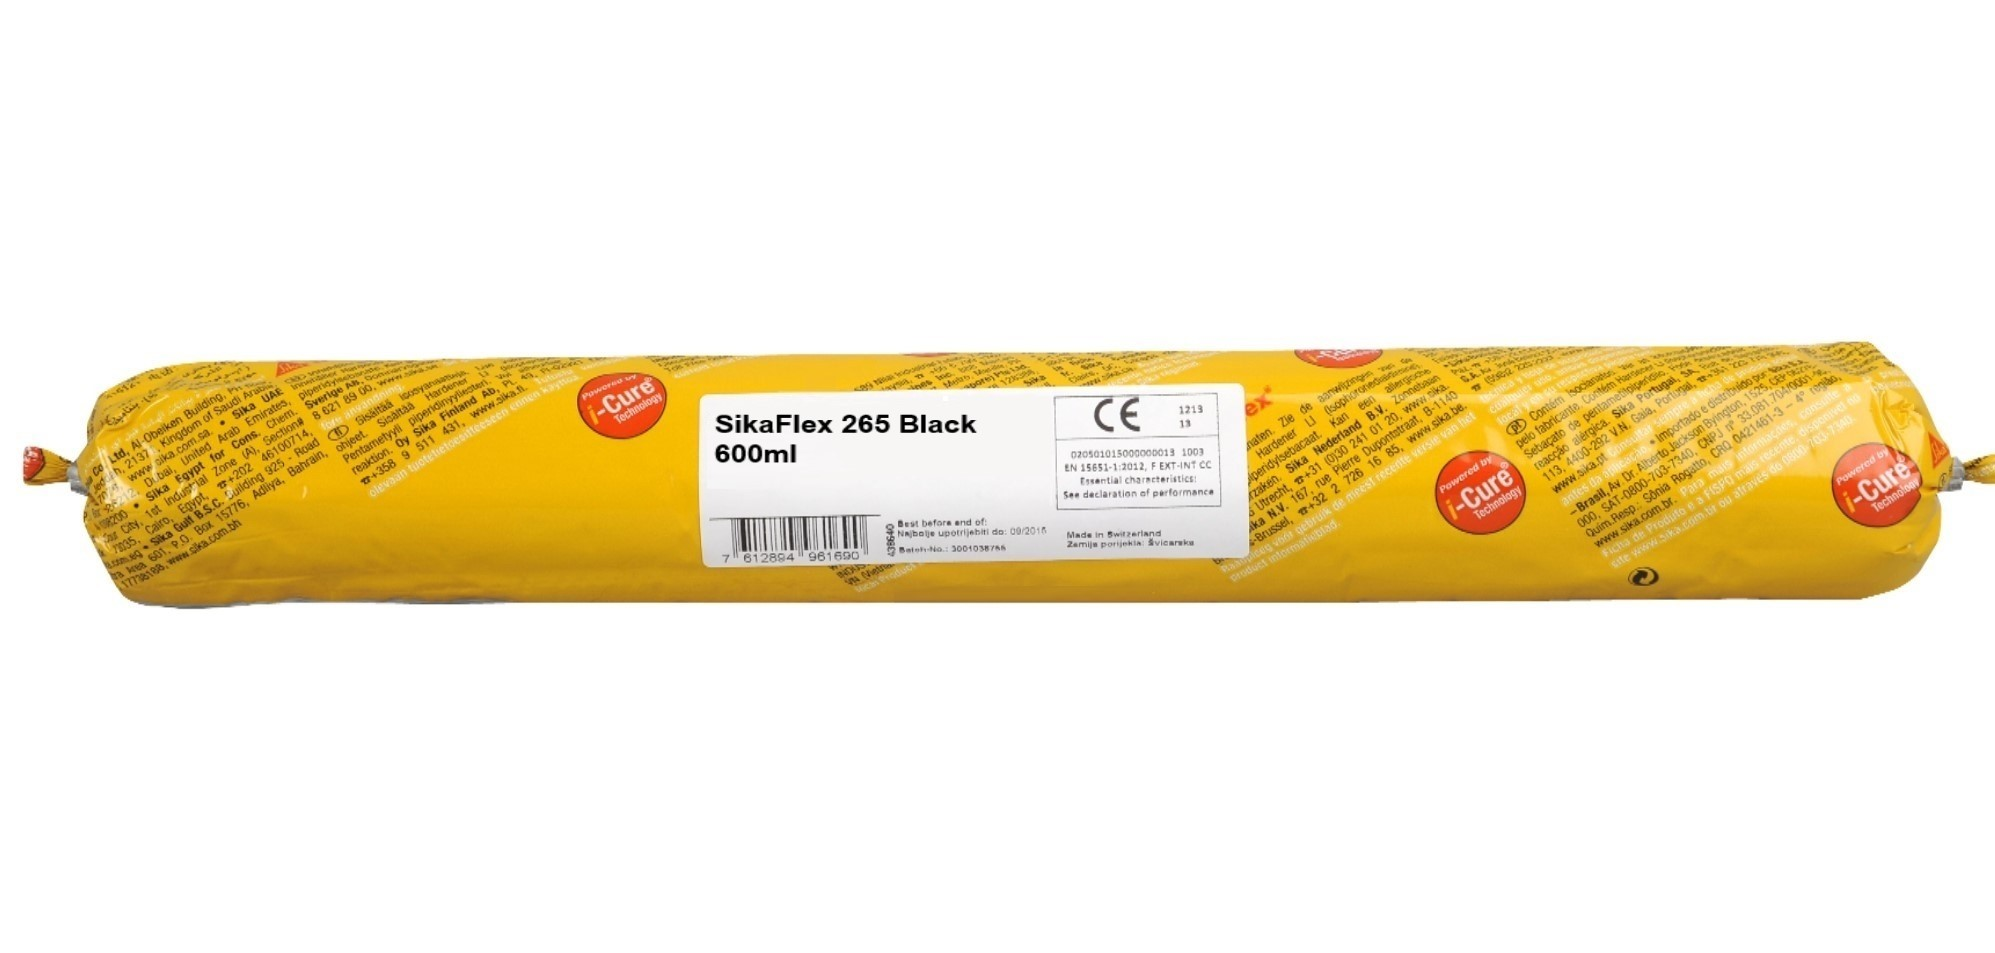 Sikaflex 265 Black Sealant 600ml